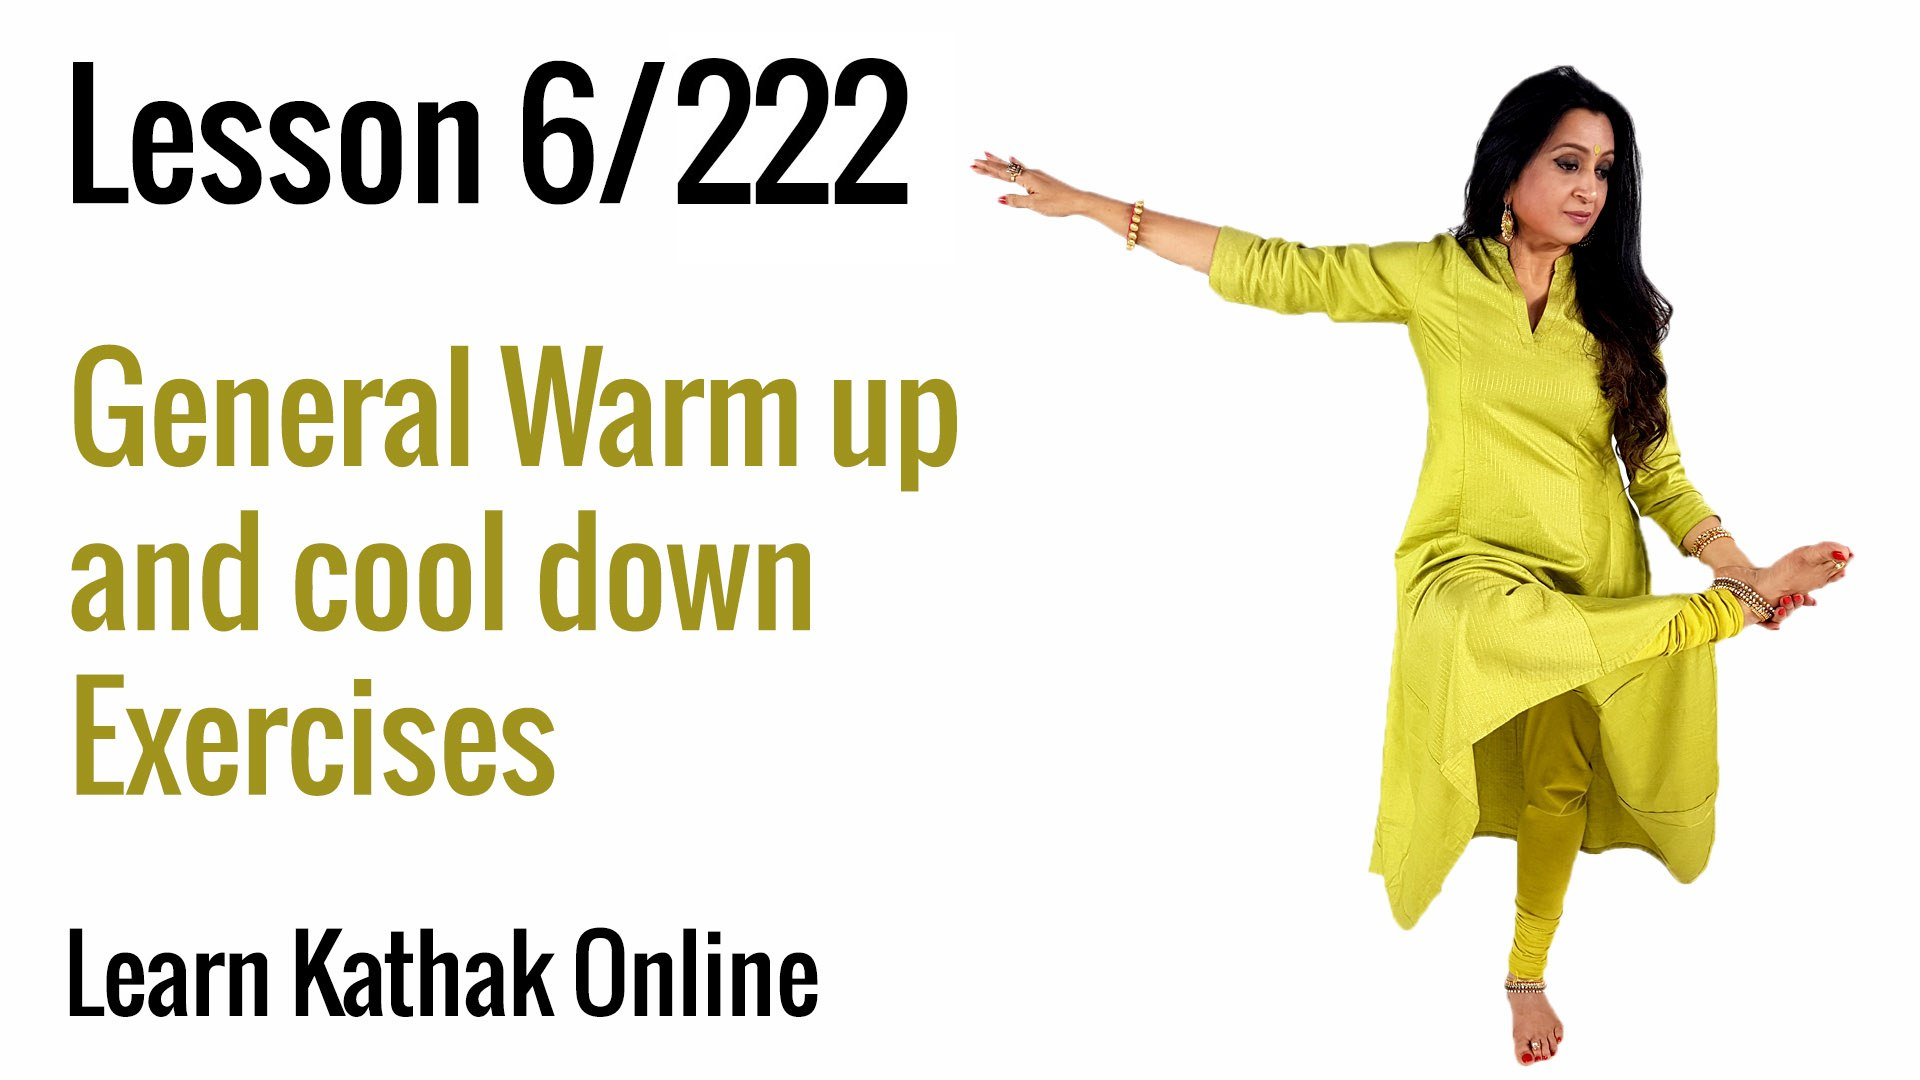 General Warm Up and Cool Down Exercises   Learn Kathak Basics from Guru Pali Chandra    Lesson 6/222